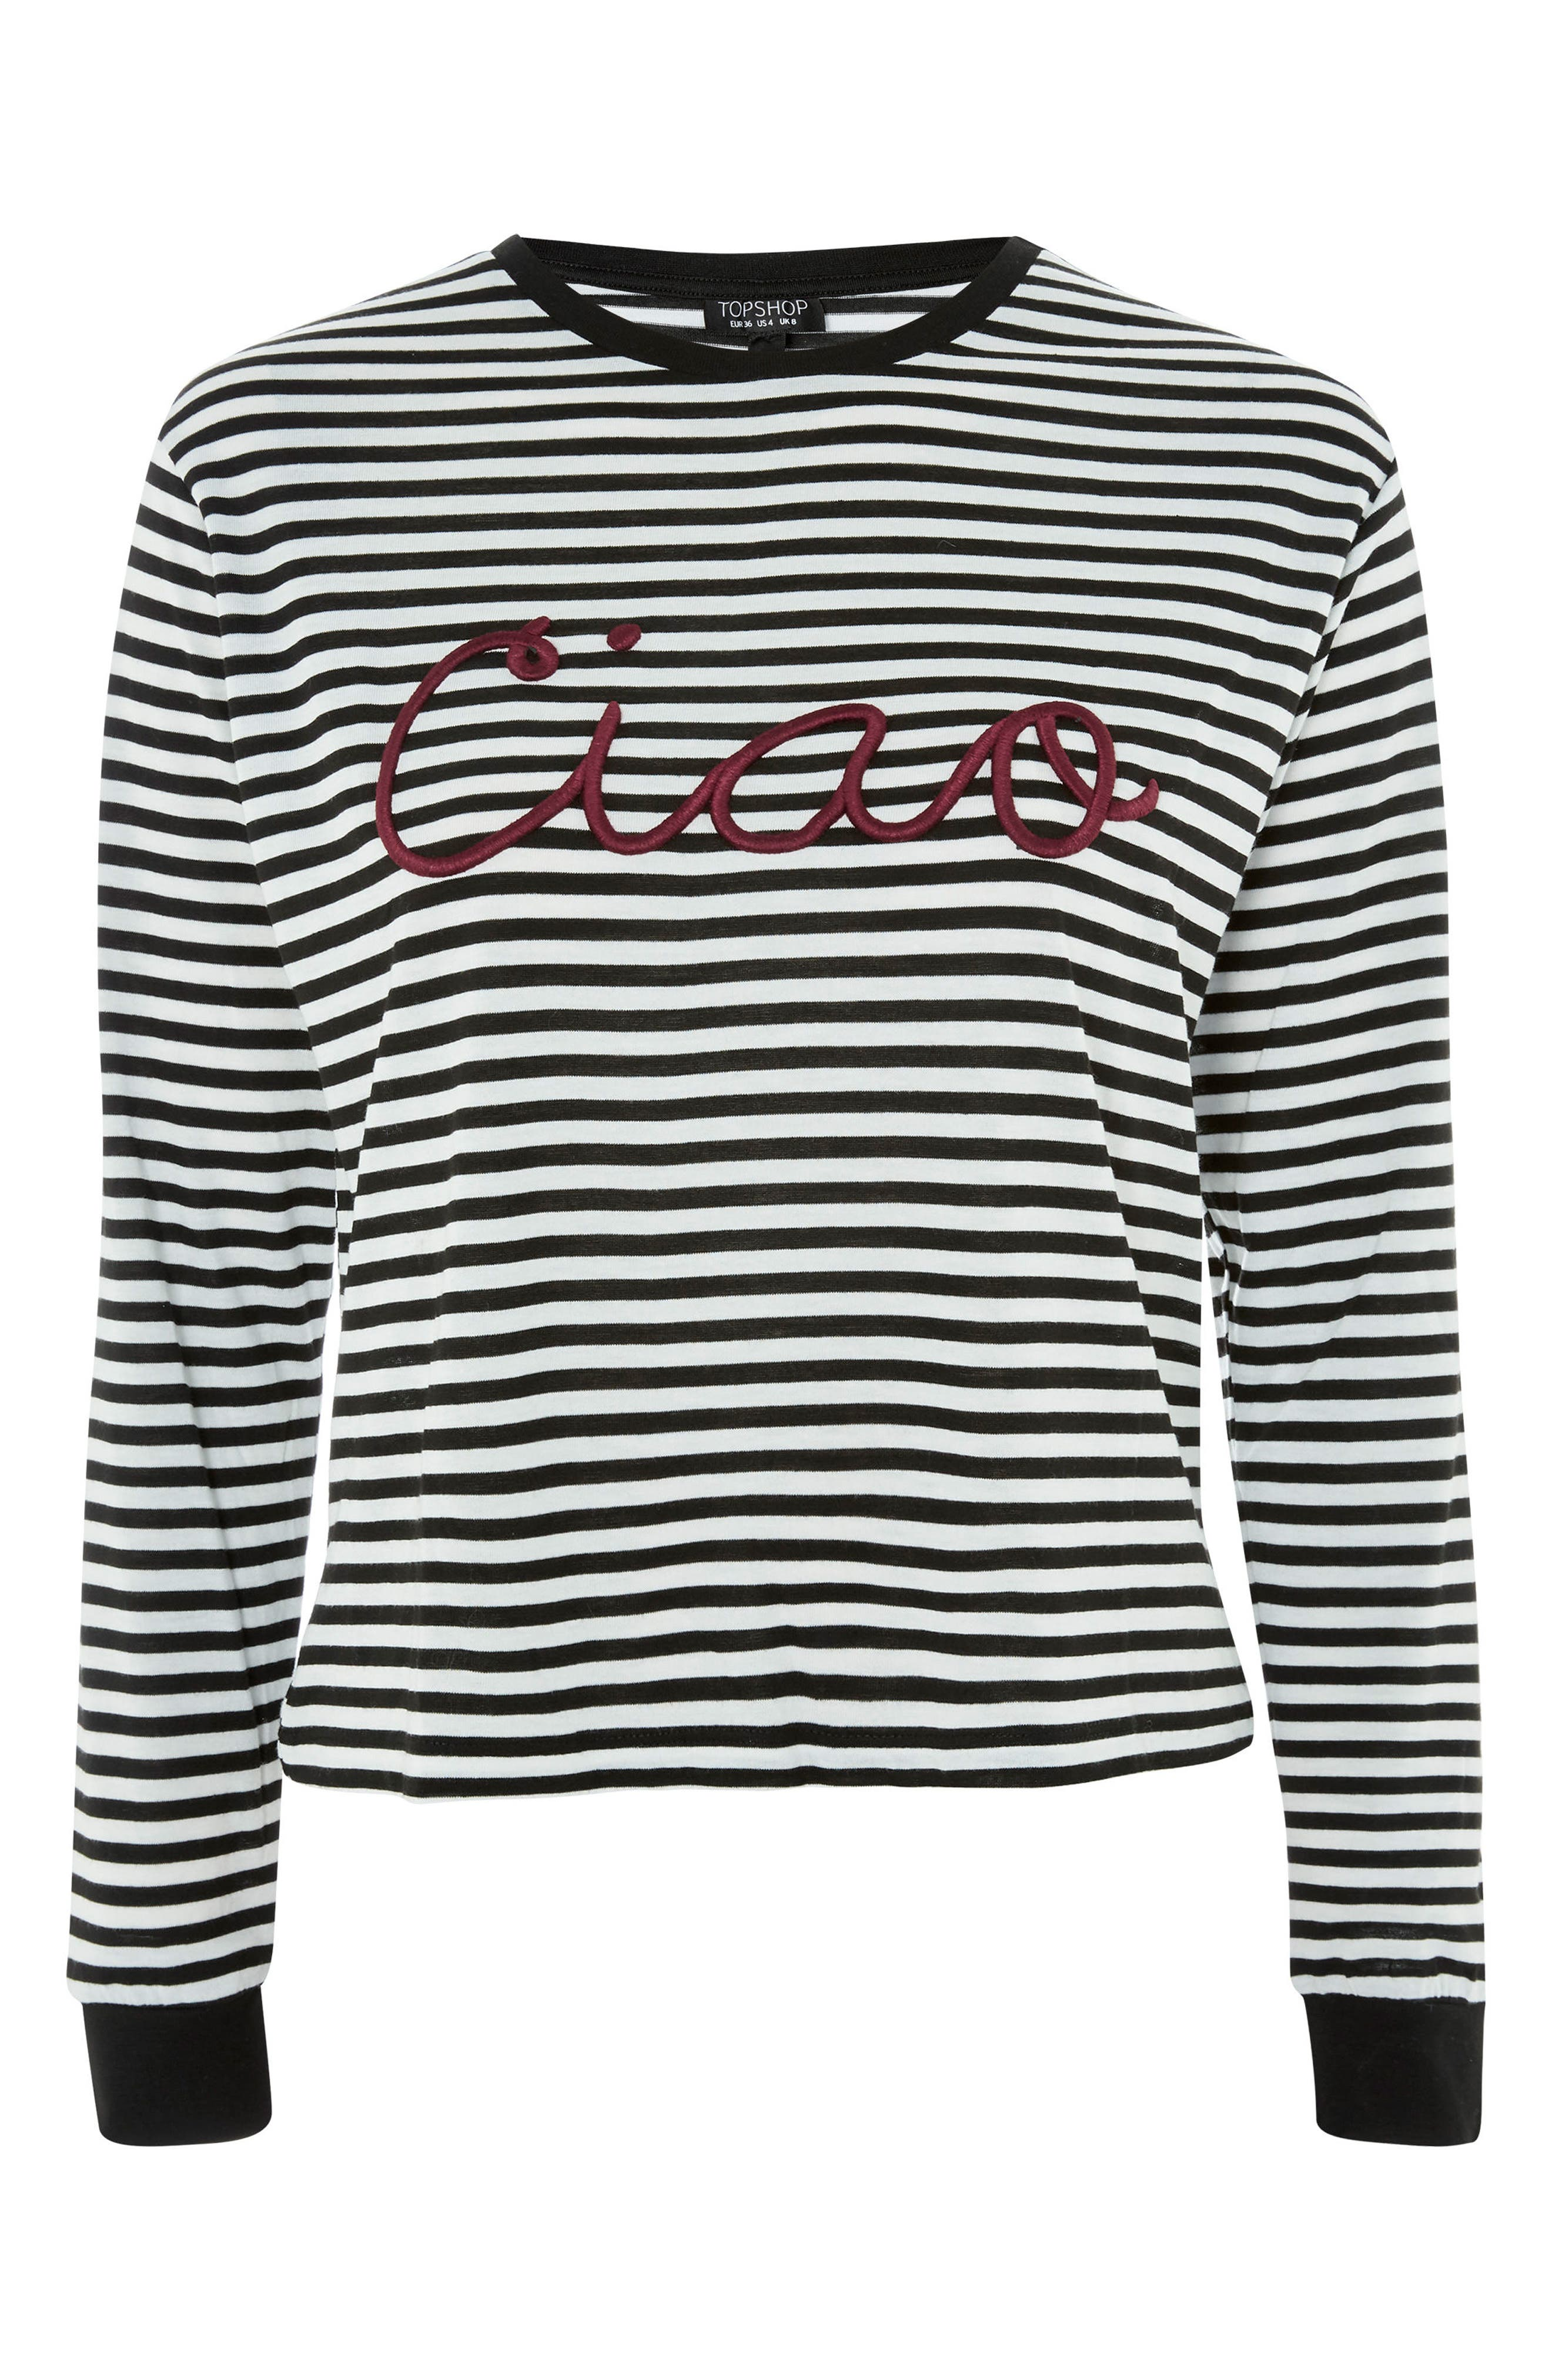 Ciao Embroidered Stripe Shirt,                             Alternate thumbnail 4, color,                             Black Multi